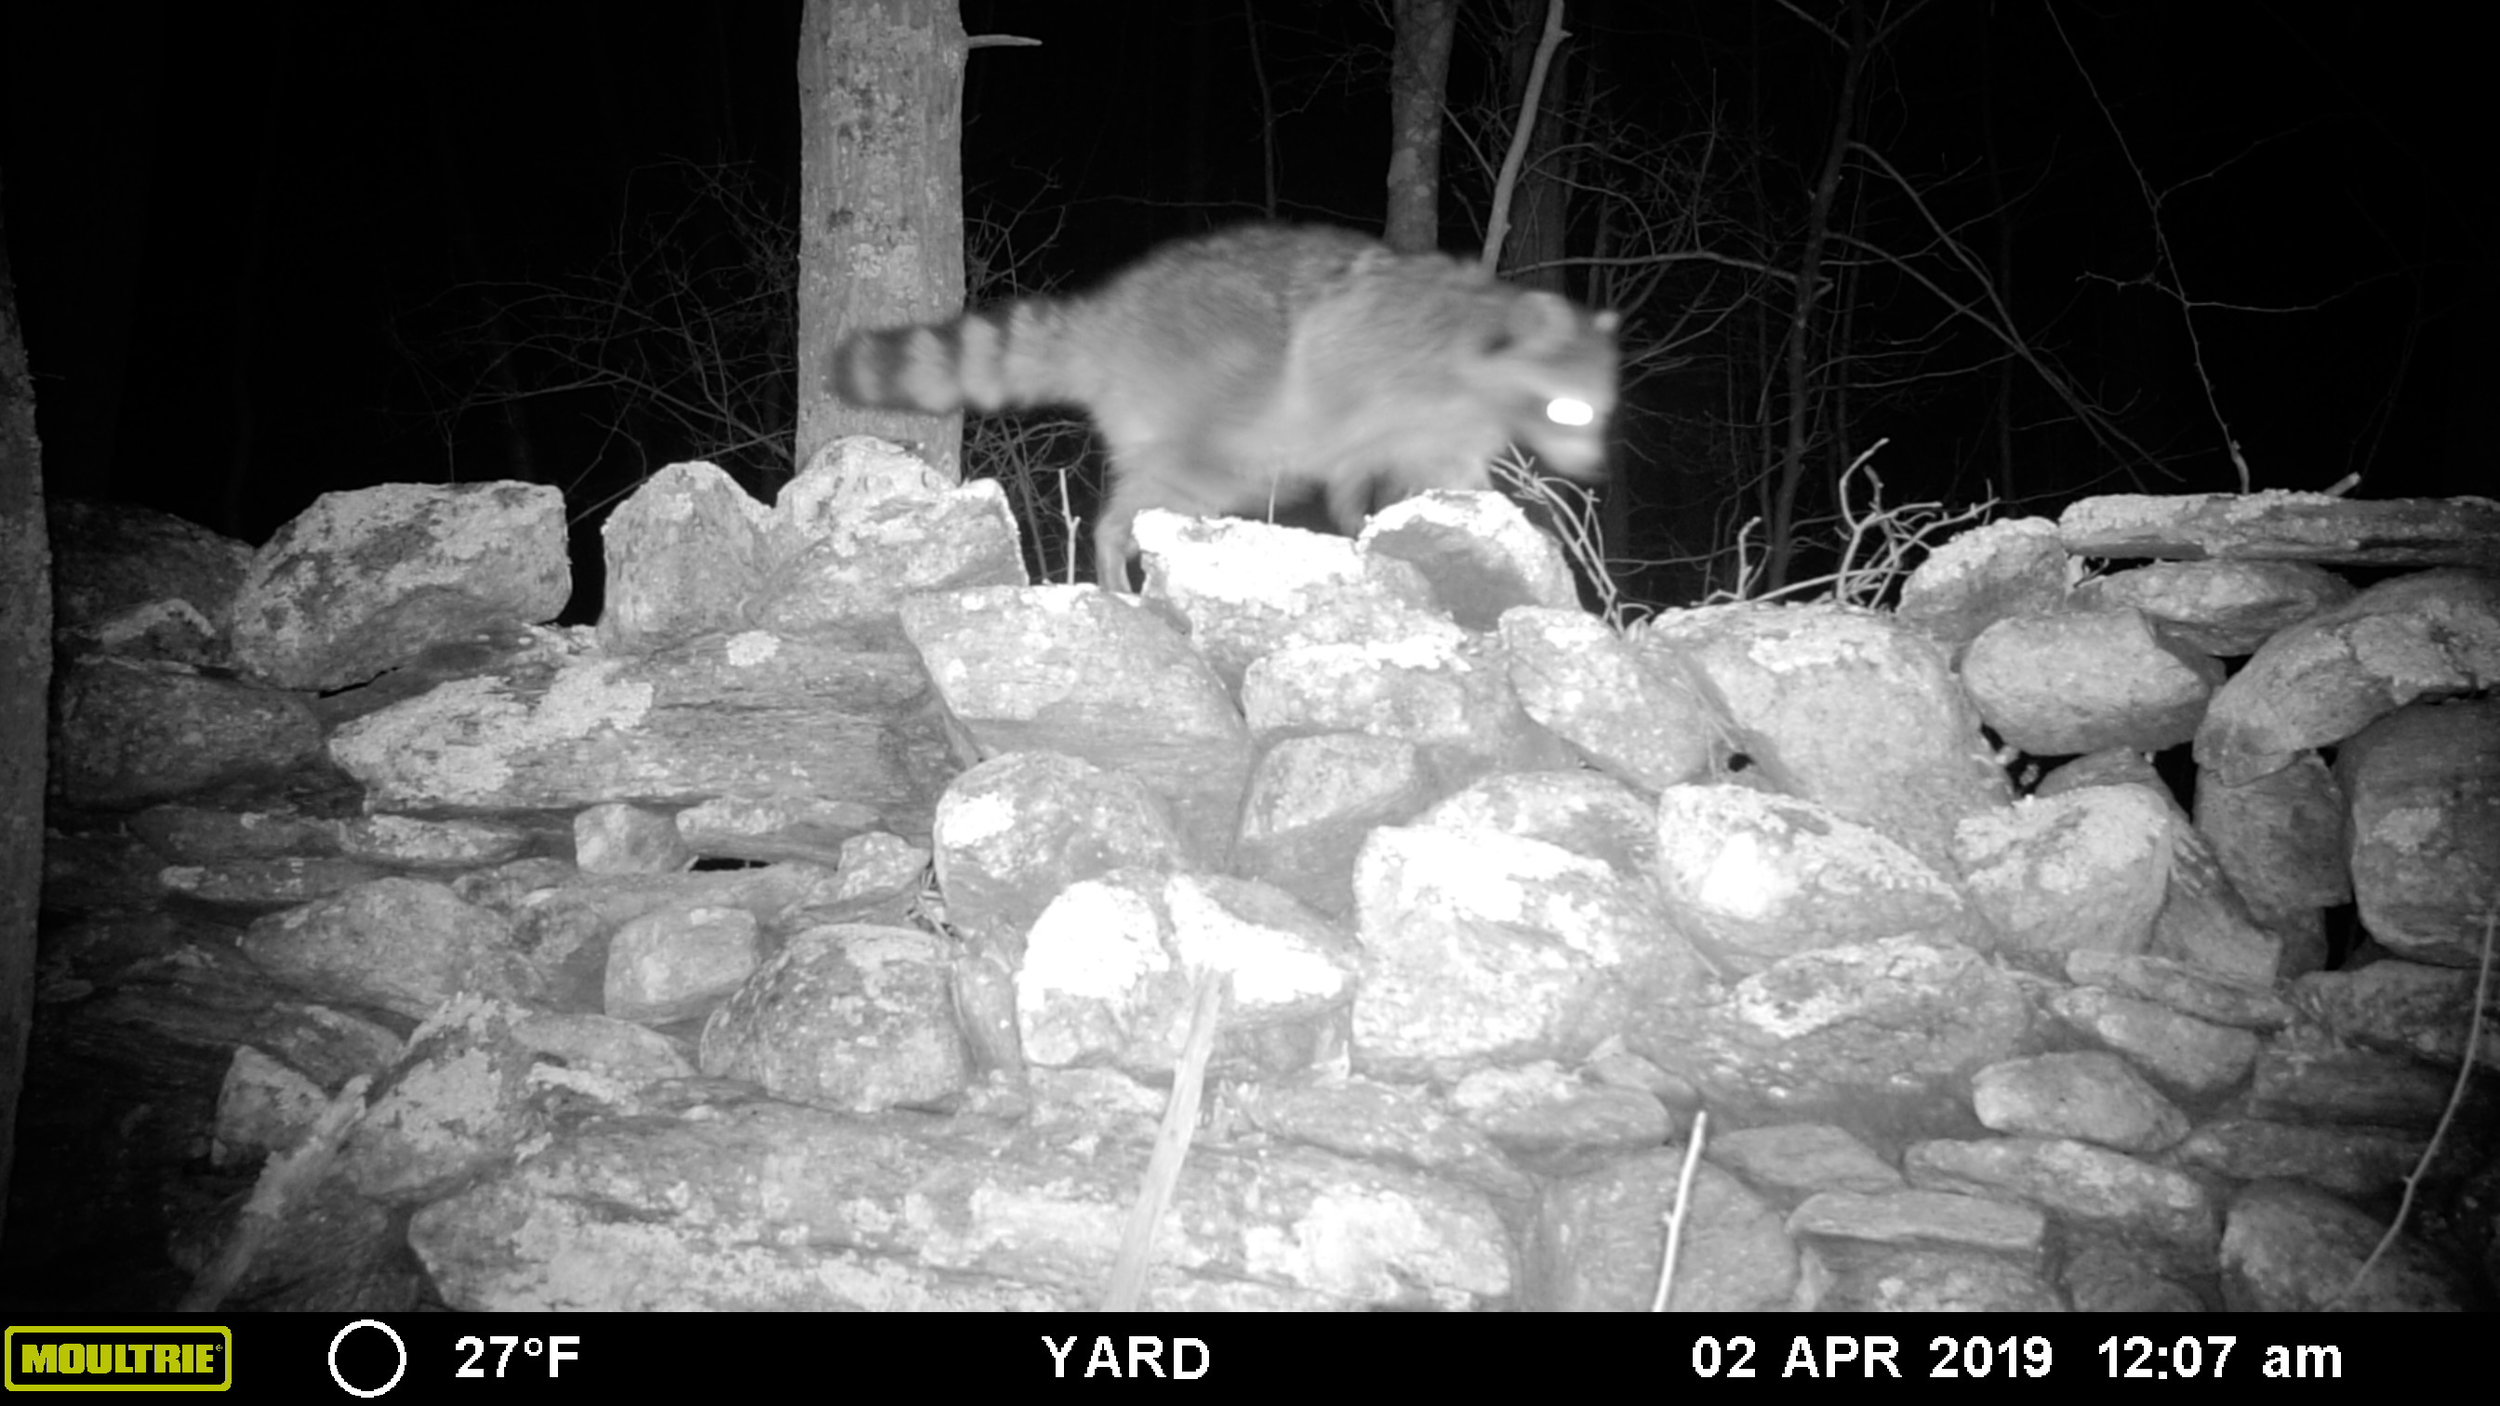 A North American Raccoon travels on top of a remnant rock wall.